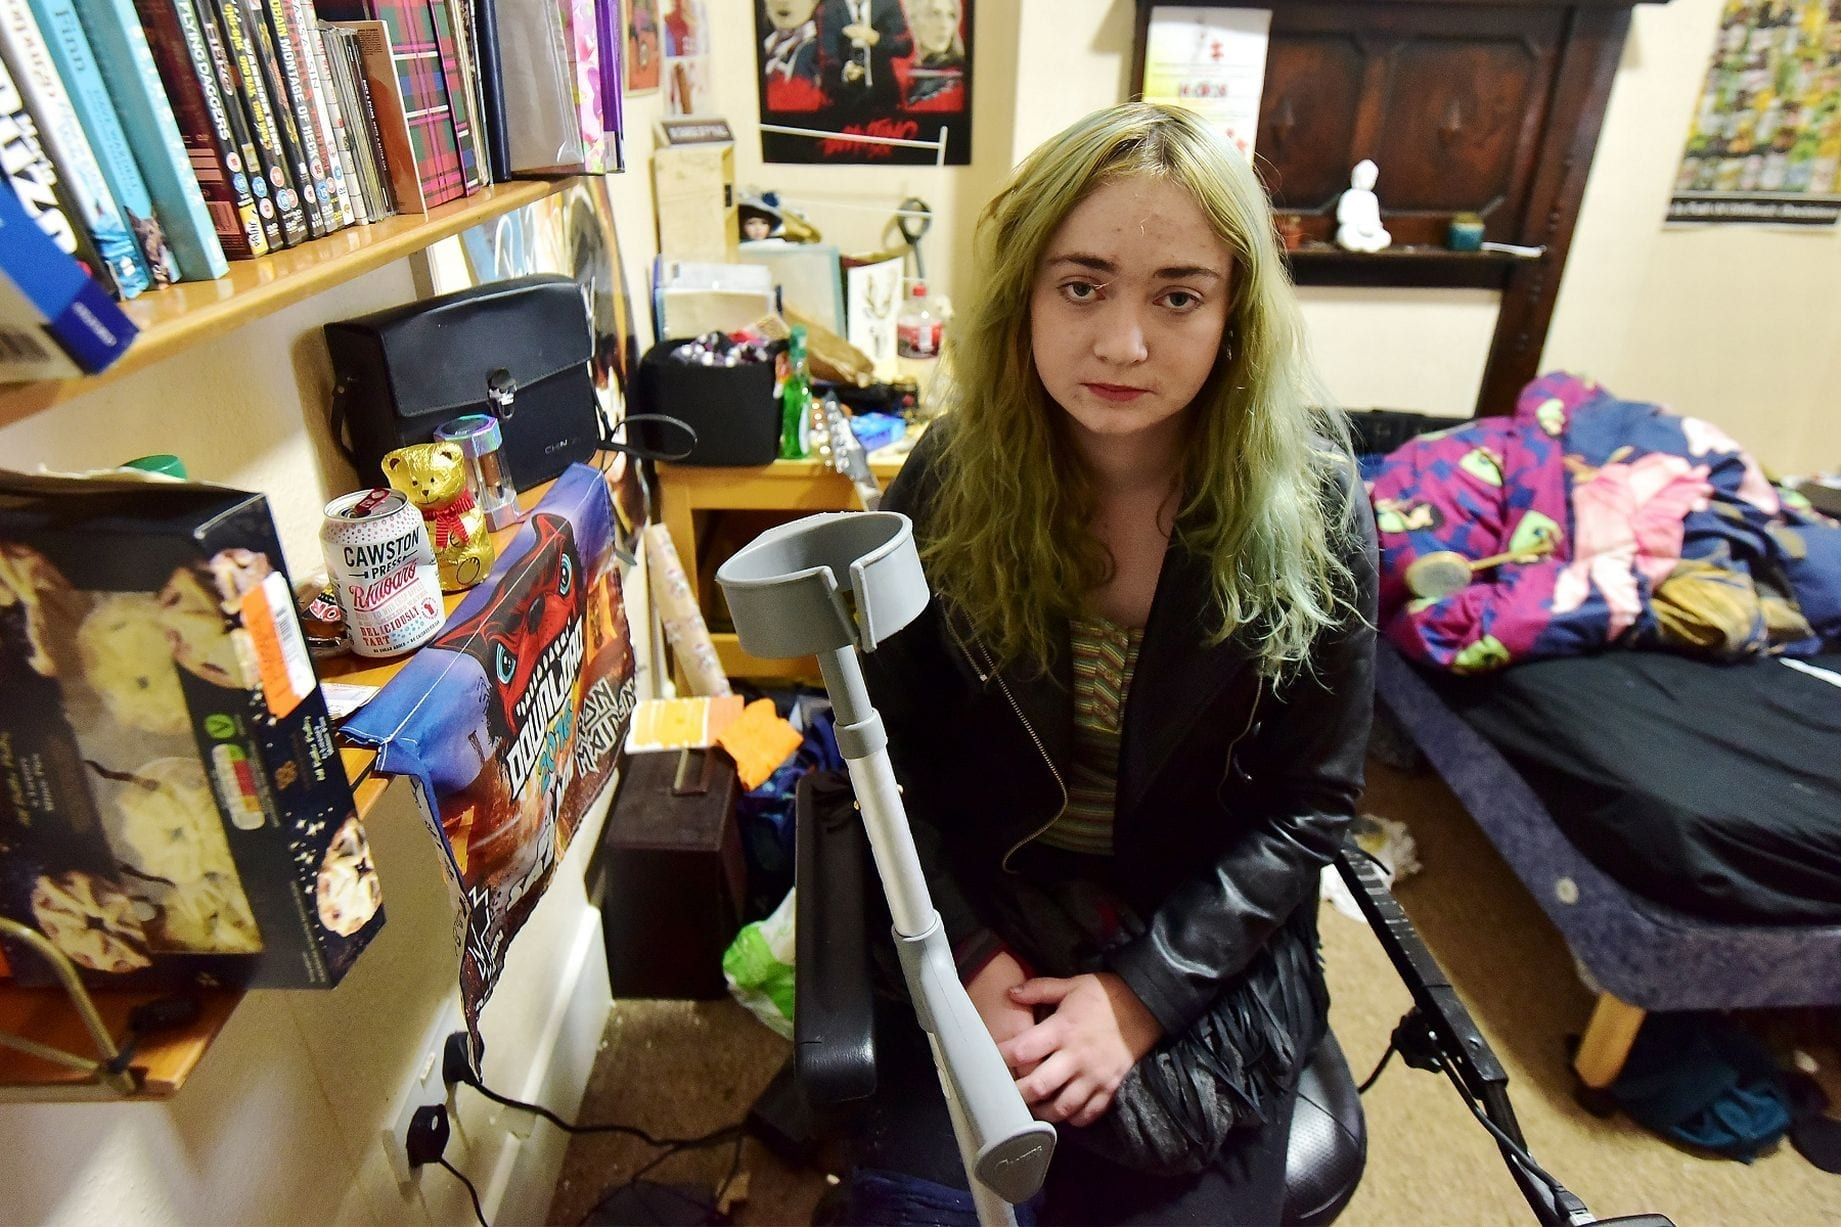 'I Felt Guilty Using Foodbanks' - Disabled Student Shed Light On The Alarming Reality Of Living Off Universal Credit - Revealing She Had Just £25 A Week To Survive On